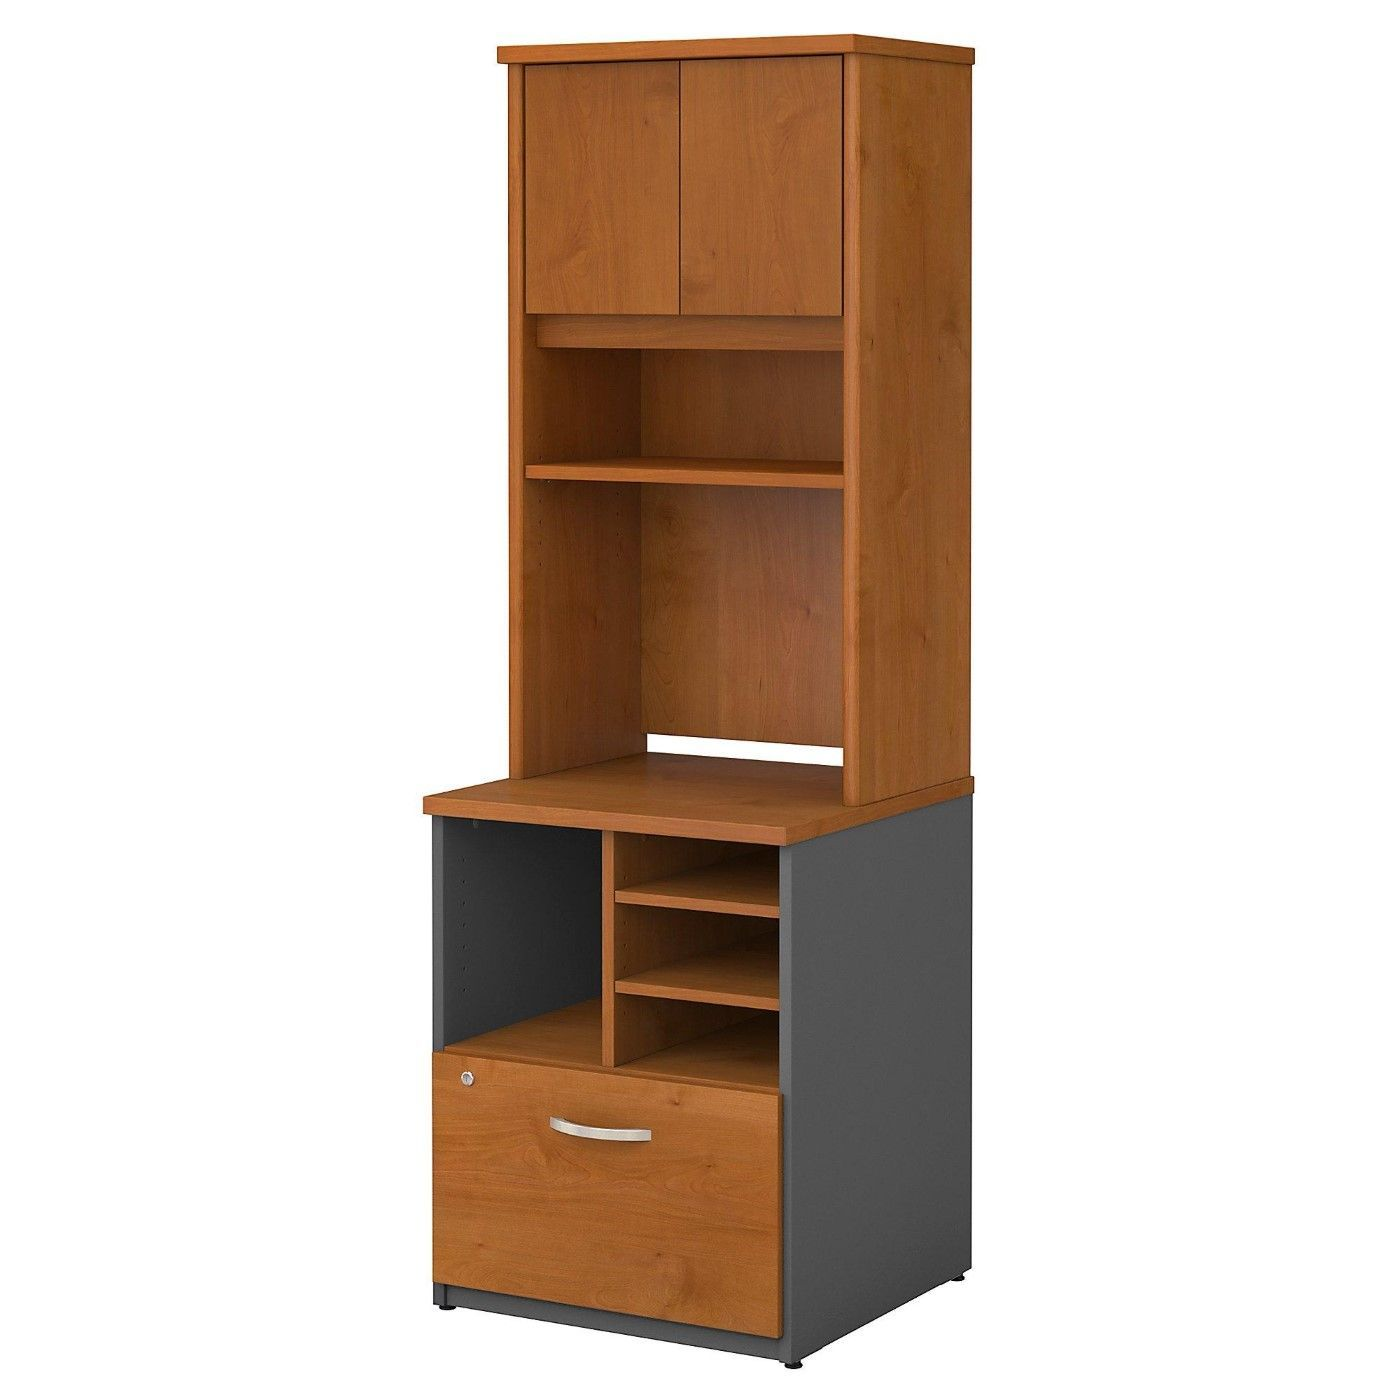 <font color=#c60><b>BUSH BUSINESS FURNITURE SERIES C 24W PILER FILER CABINET WITH HUTCH. FREE SHIPPING</font></b>